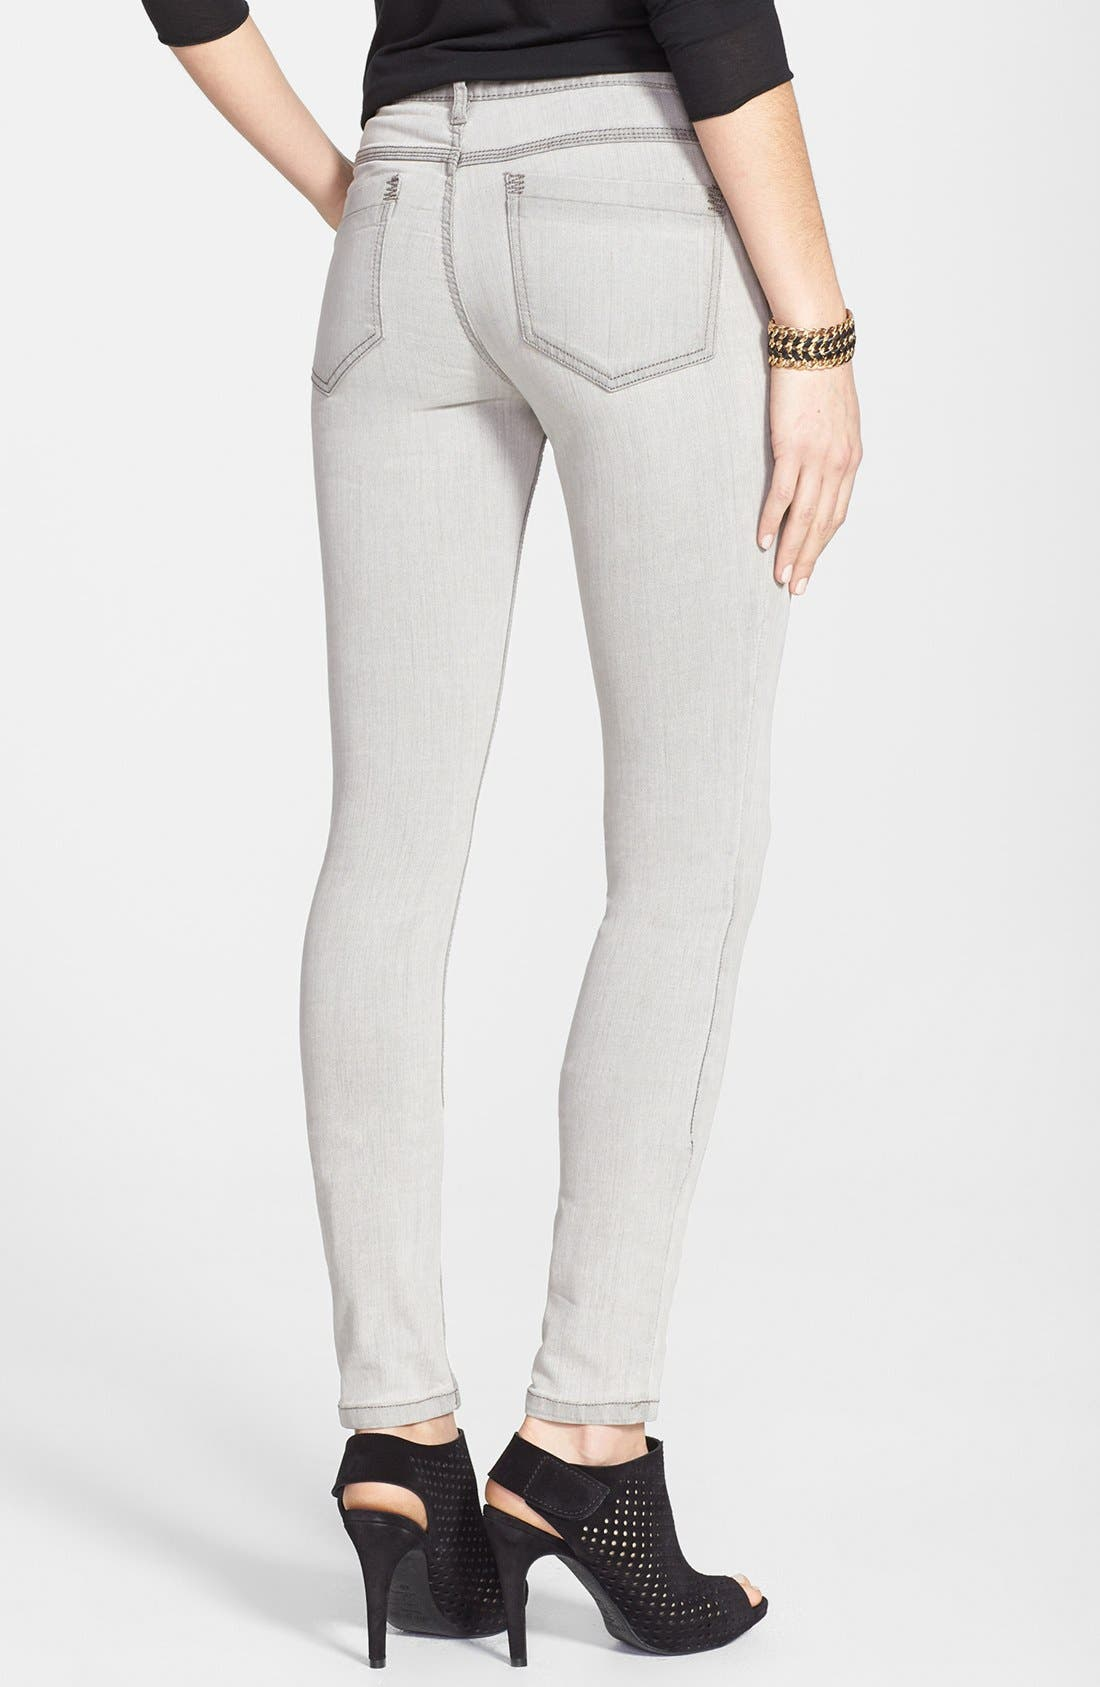 Alternate Image 2  - Free People Stretch Skinny Jeans (Cloudy Grey)